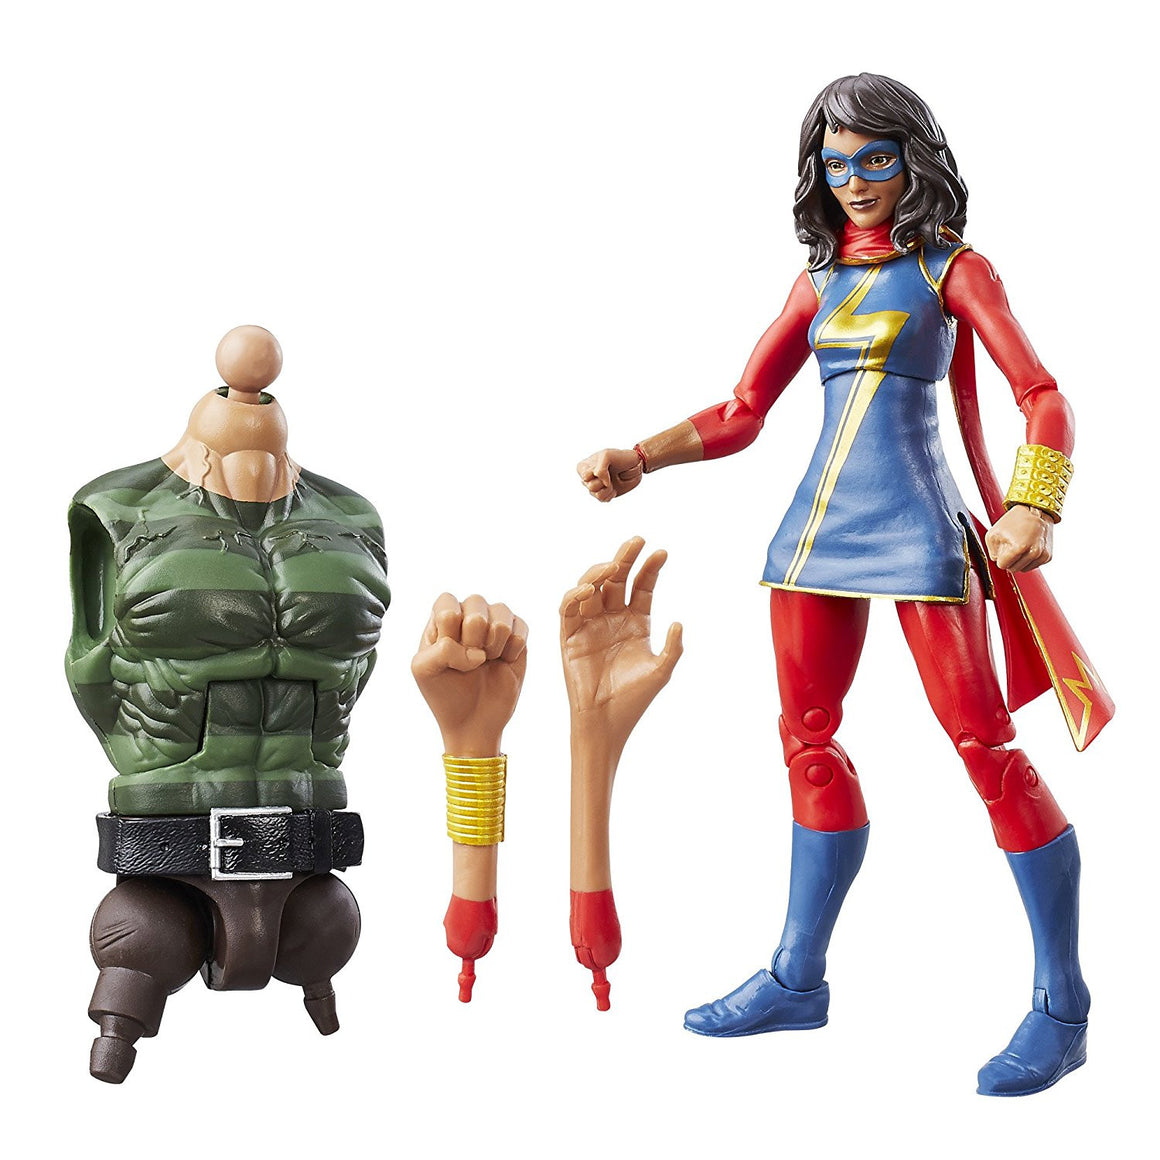 Marvel Legends: Ms. Marvel Figure by Hasbro